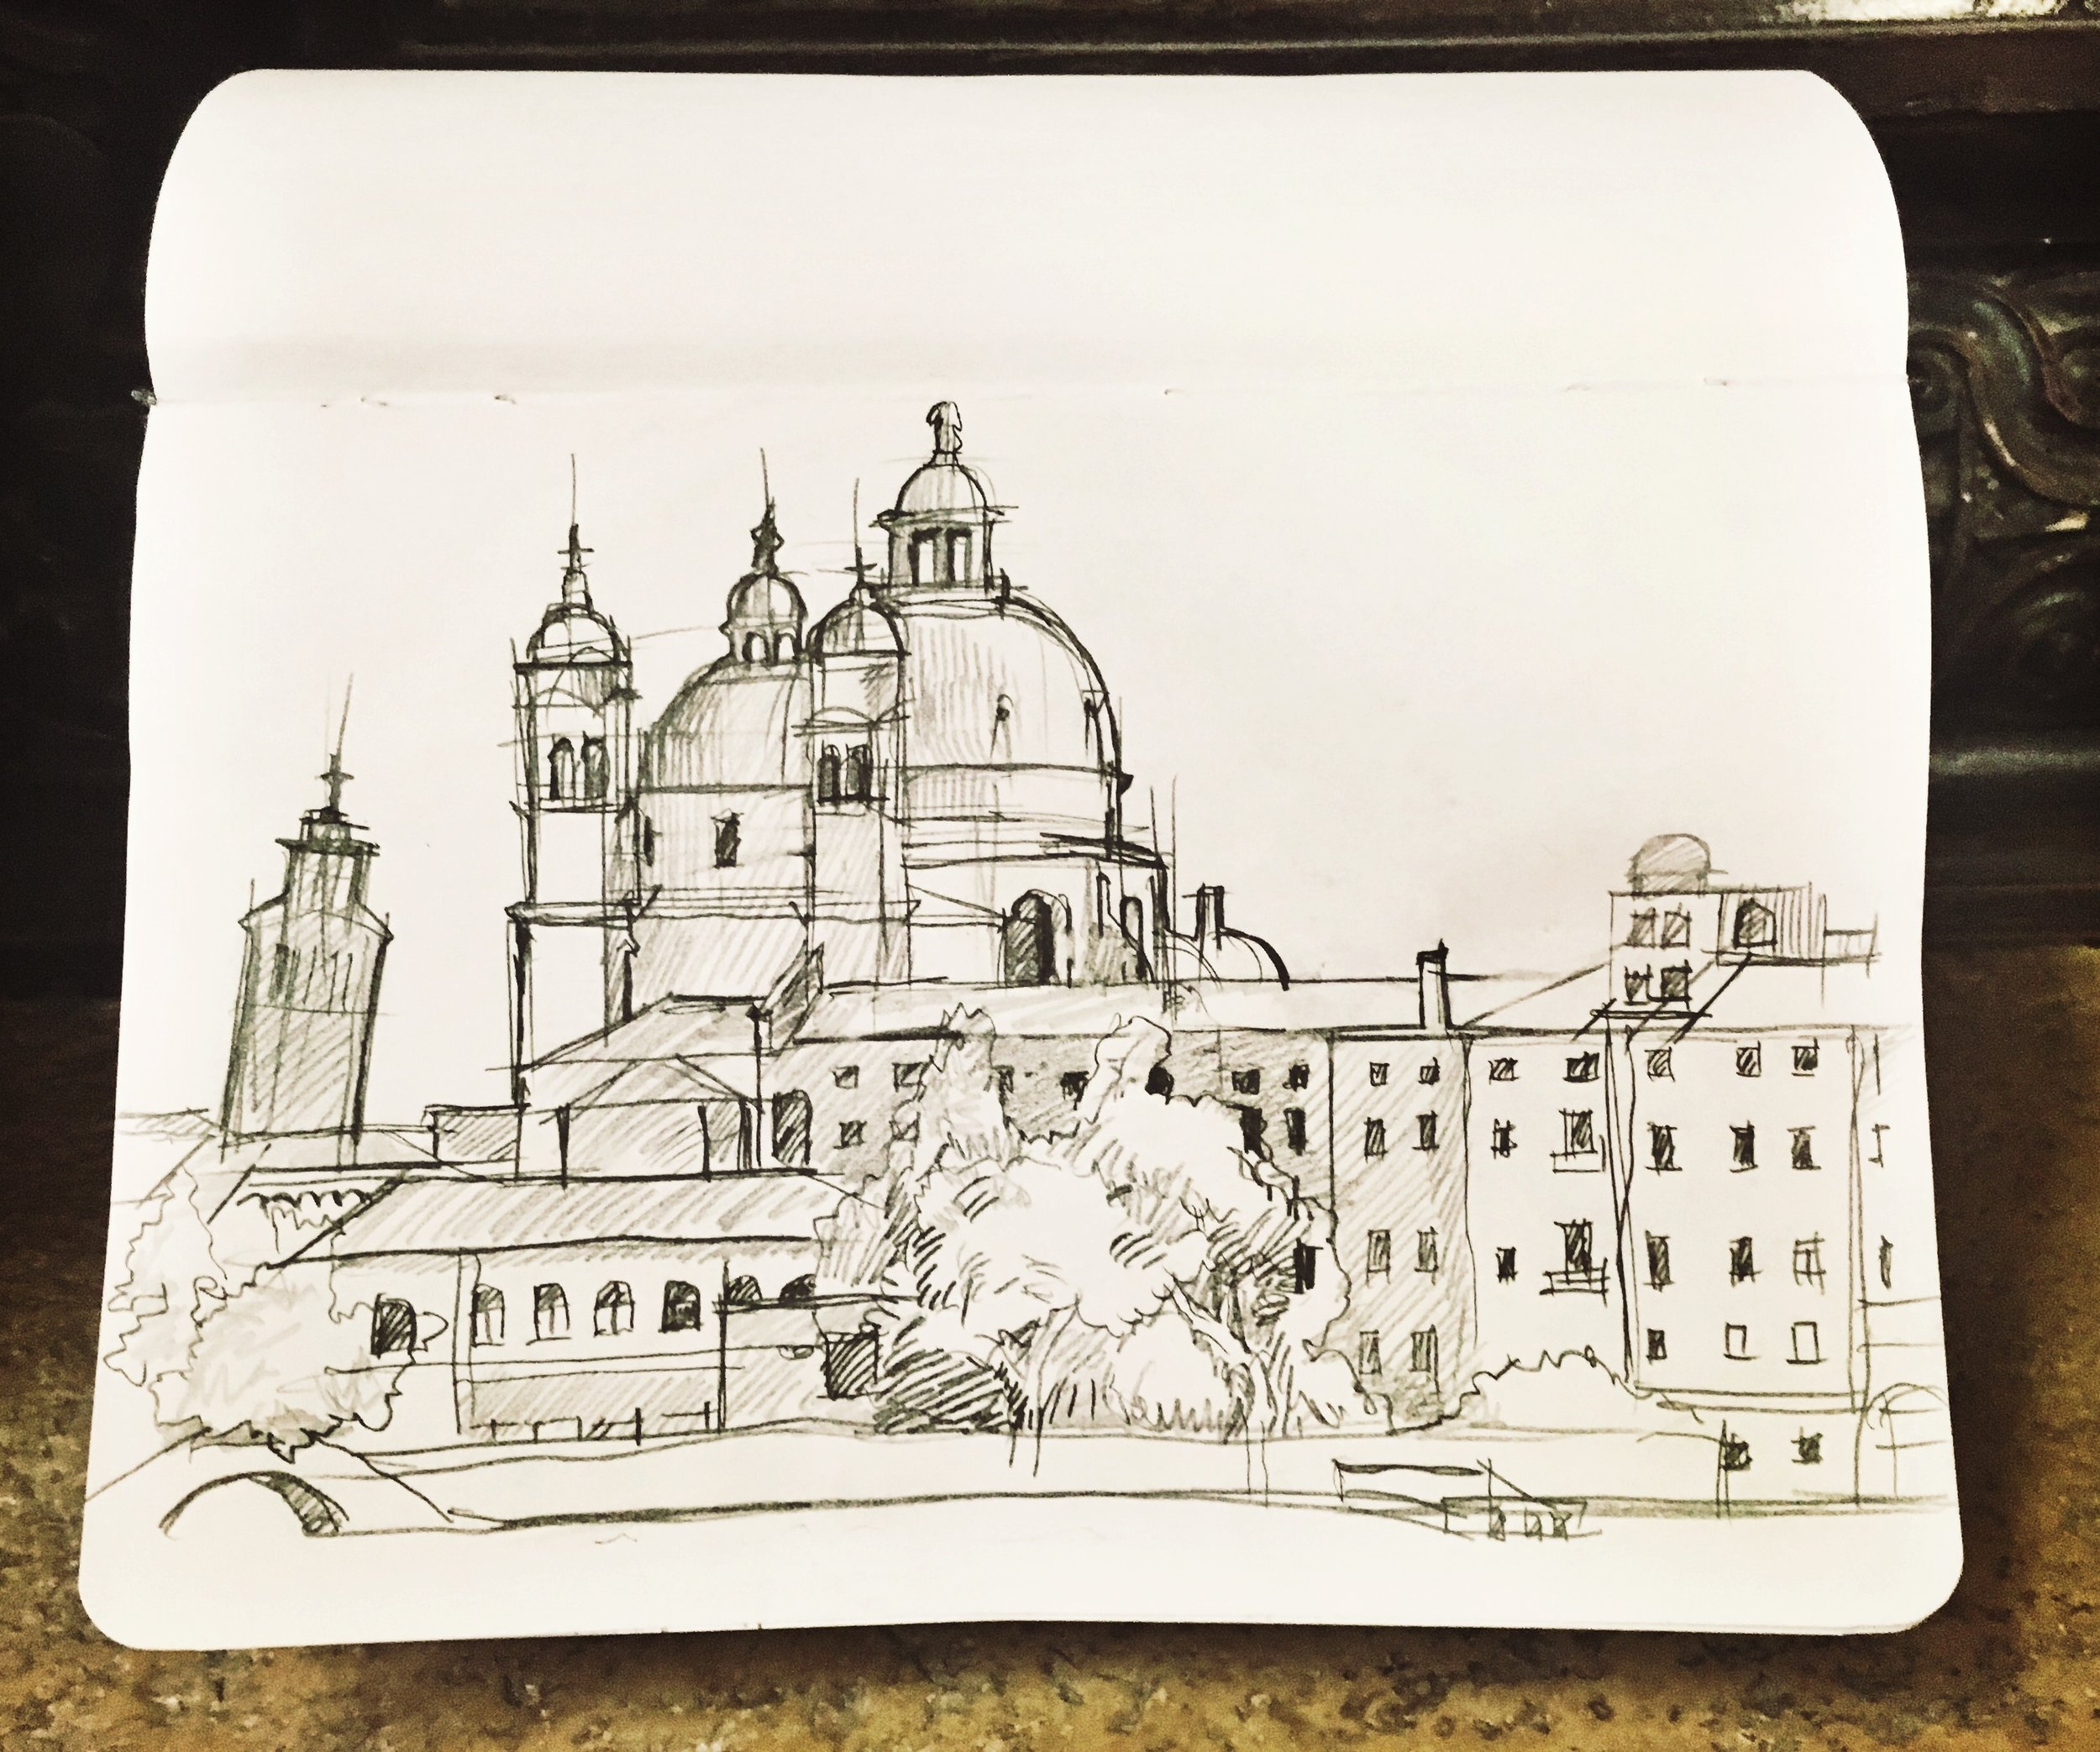 A casual sketch of San Marco by Penghui Zhang, which we used for our annual exhibition's poster design!